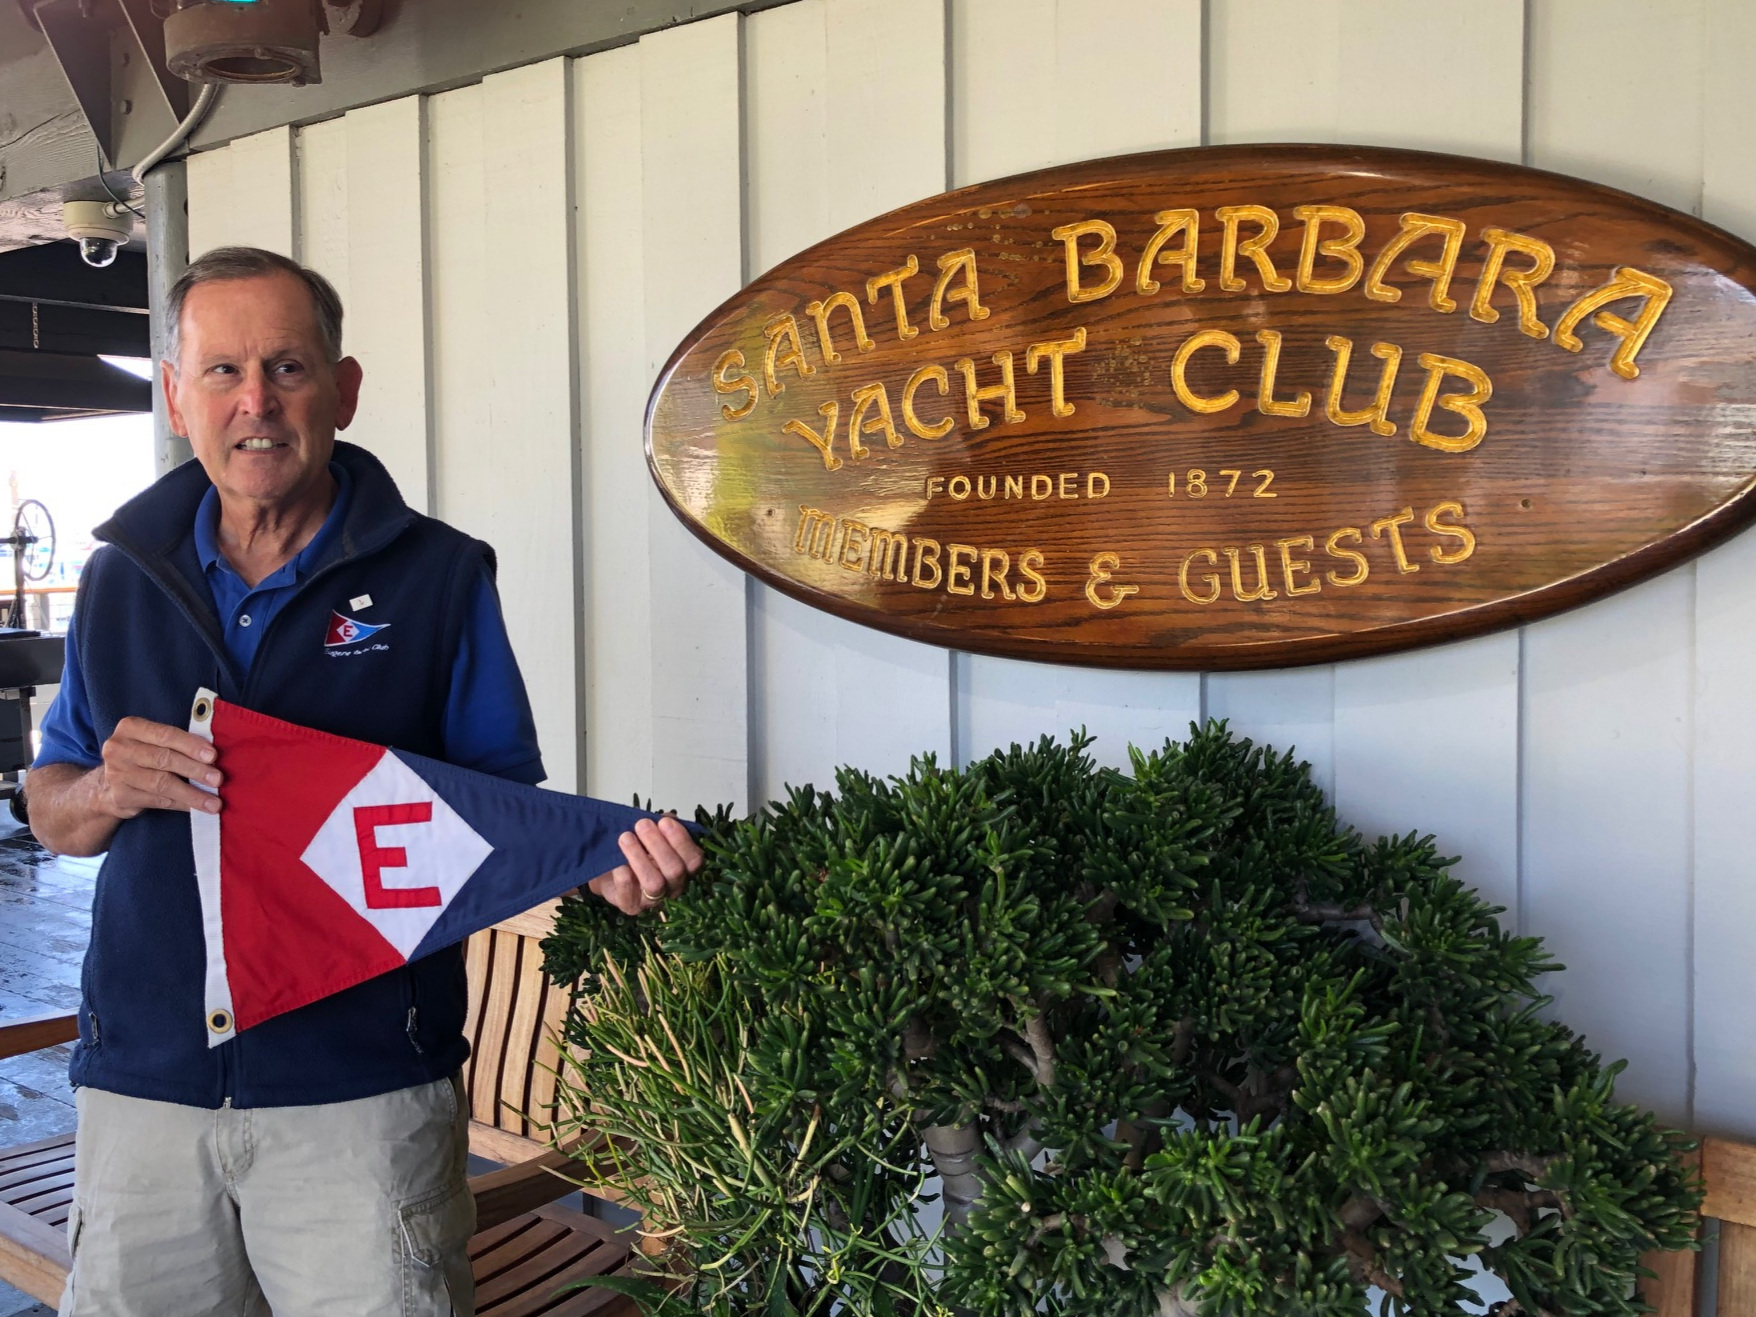 Gary before the burgee exchange with Santa Barbara Yacht Club in California